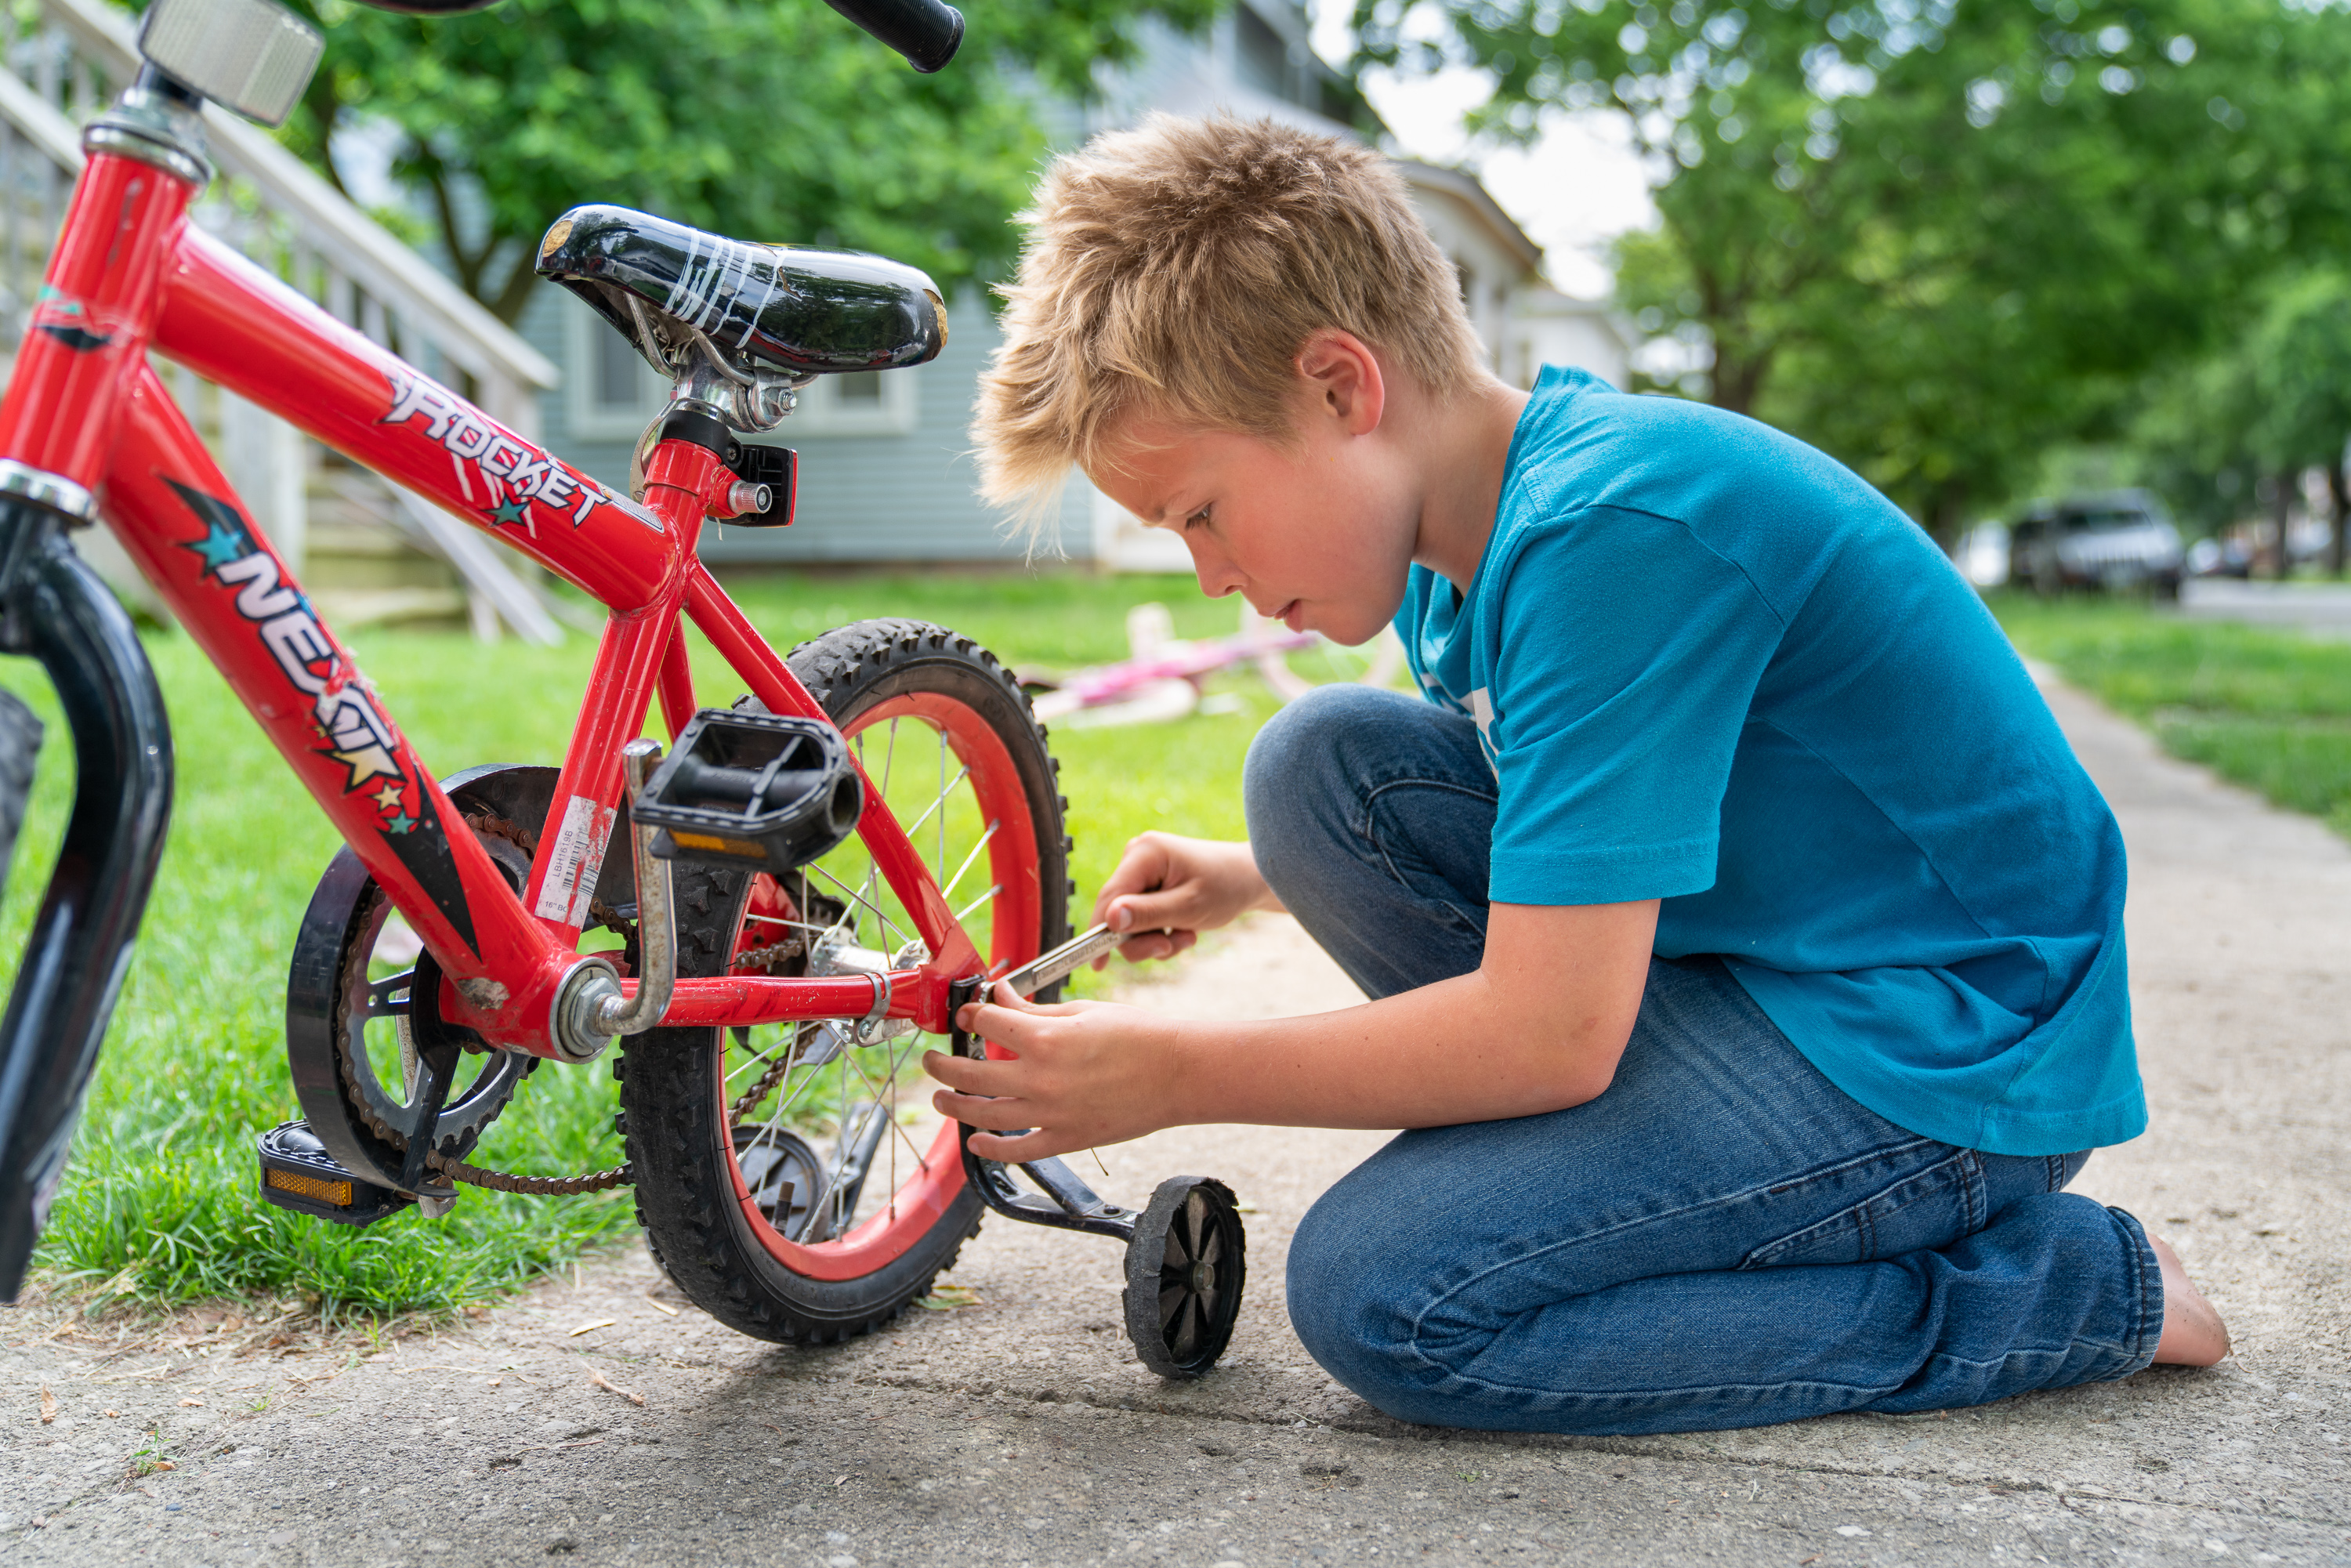 A young boy from a pilot stake in Columbus, Ohio works on his bicycle as part of the Children and Youth program.